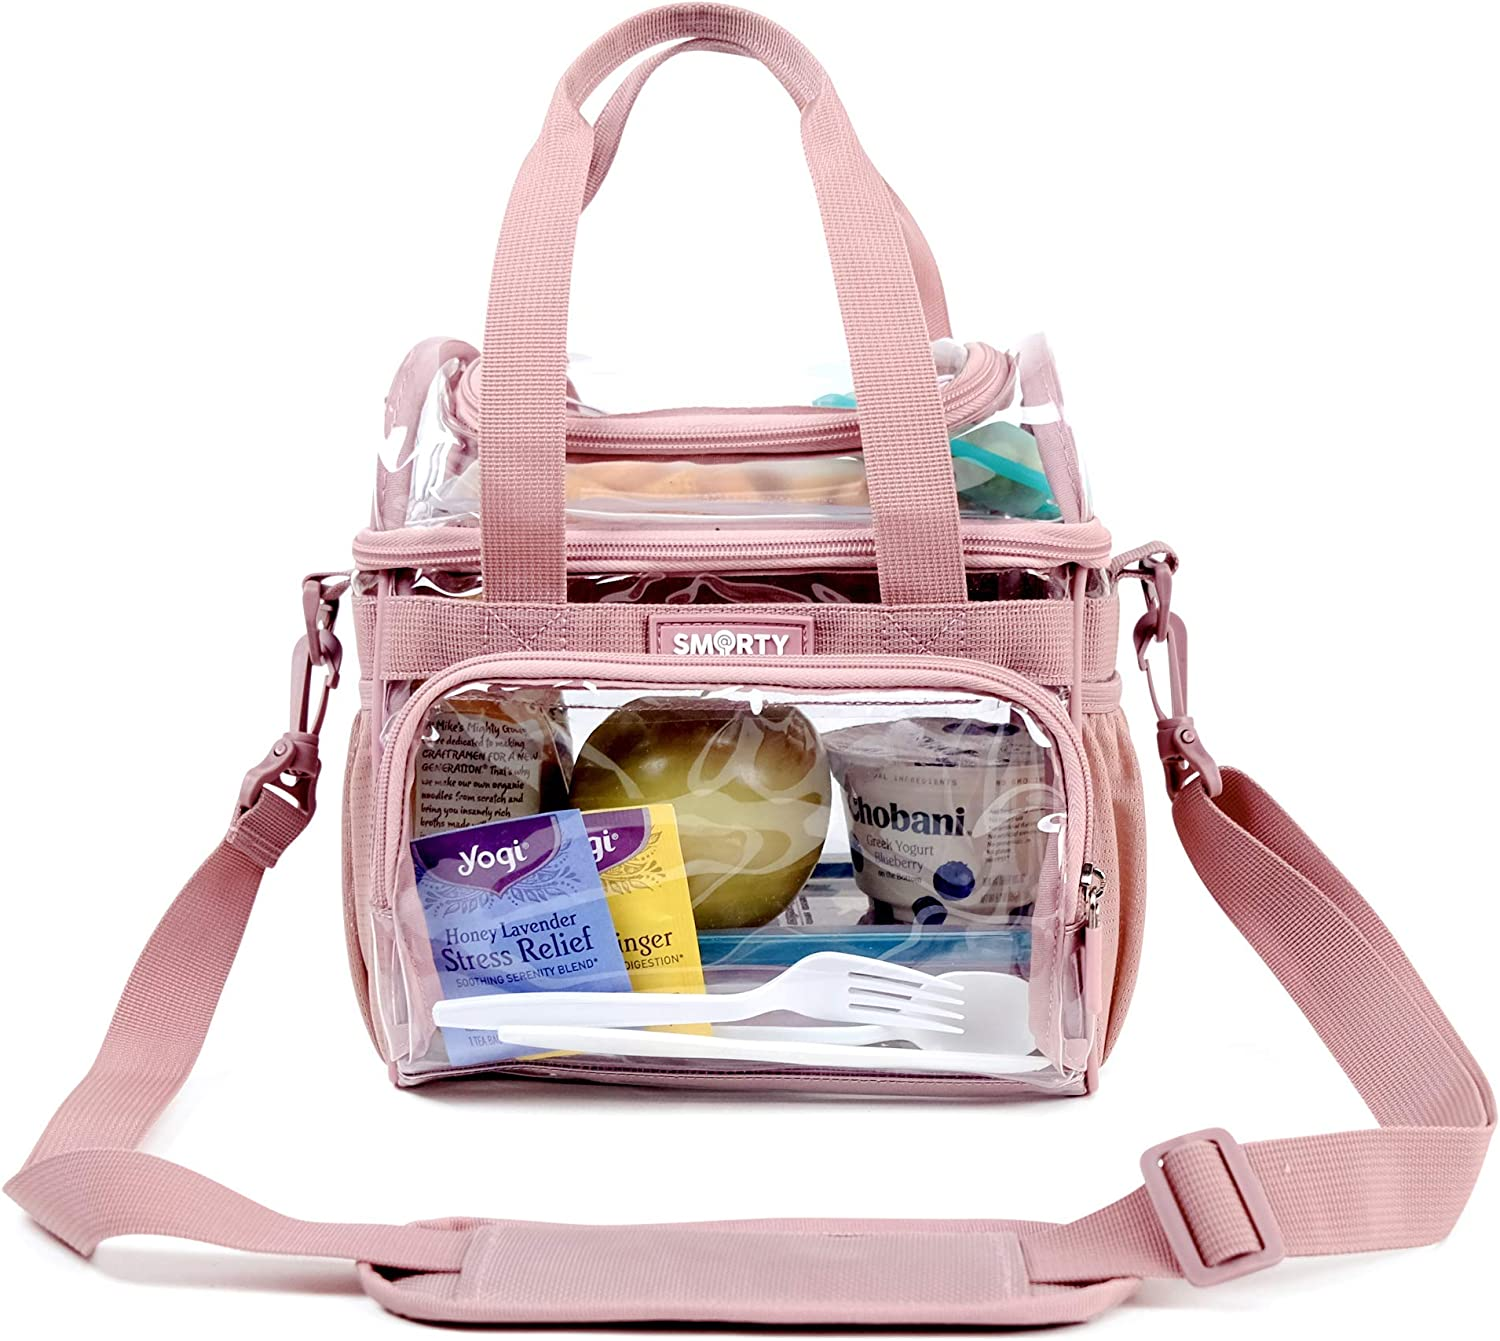 Medium Heavy Duty Clear Lunch Tote Stadium Bag Event Approved Diaper Travel Makeup Cosmetic Bag for NFL Football NCAA Basketball PGA NASCAR Concerts Correctional Officers (Pink, 10 x 9.5 x 6)